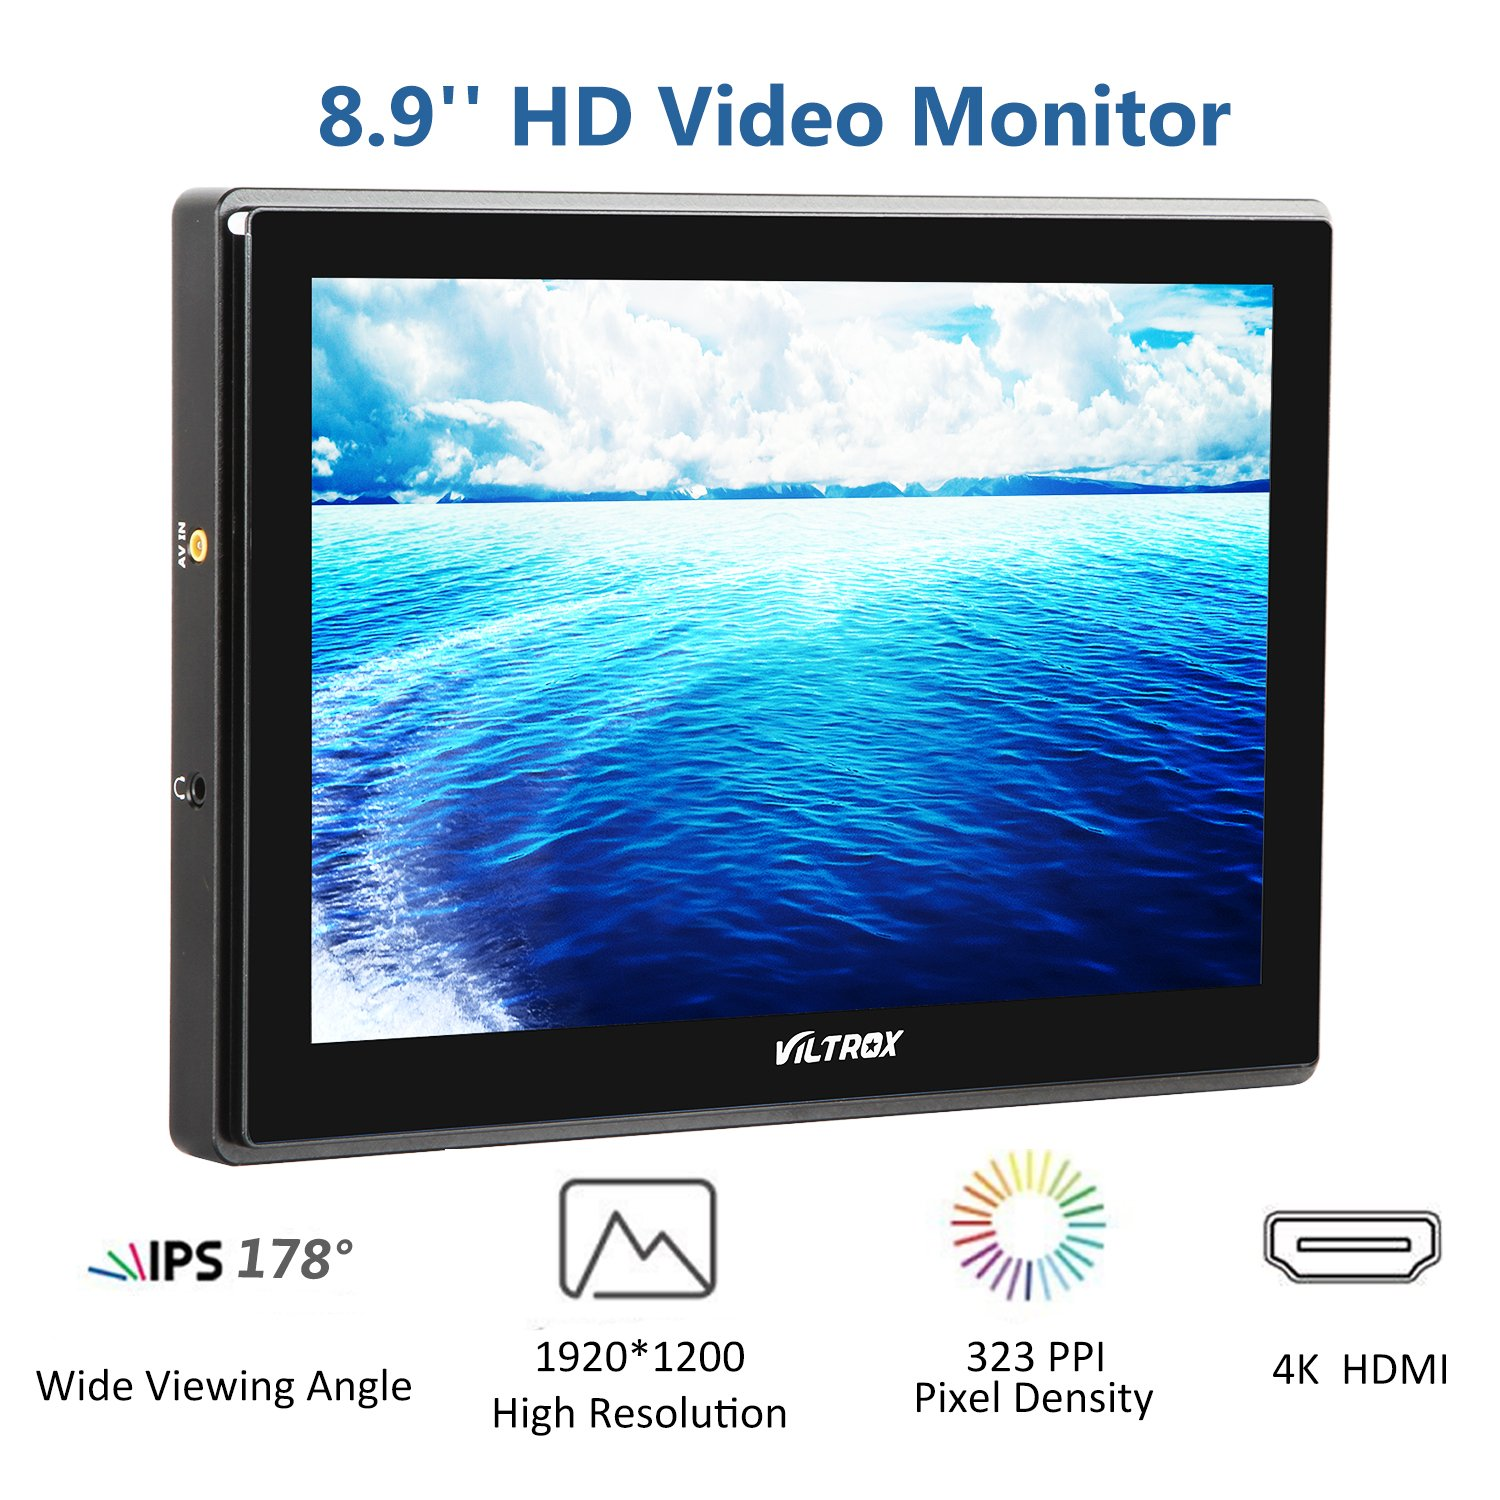 VILTROX DC-90HD 4K HDMI Monitor Full HD 1920x1200 IPS 8.9'' Clip-on LCD Camera Video Monitor Display HDMI AV Input for Canon Nikon DSLR BMPCC, Battery with Charger(Included) ... by VILTROX (Image #2)